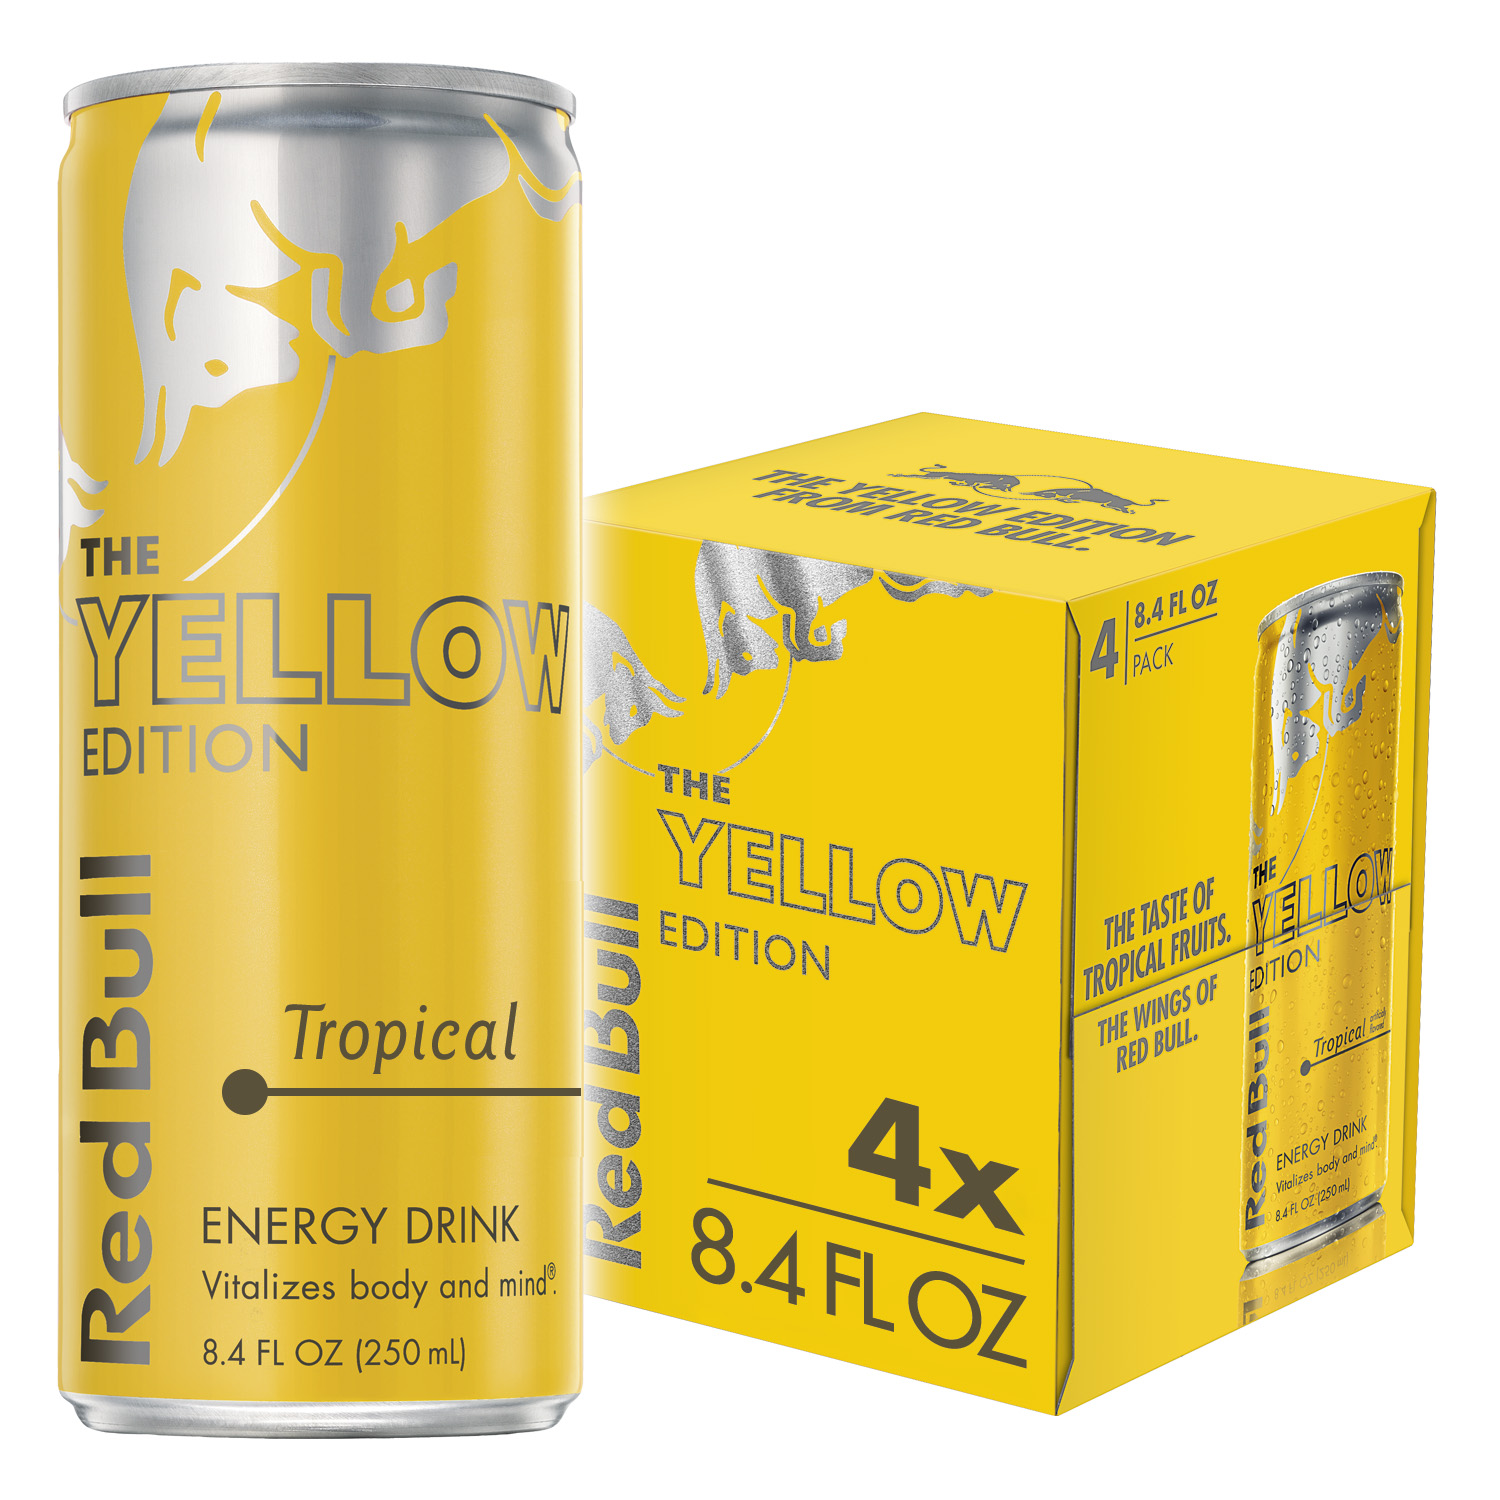 Red Bull The Yellow Edition Energy Drink, Tropical, 8.4 Fl Oz, 4 Count